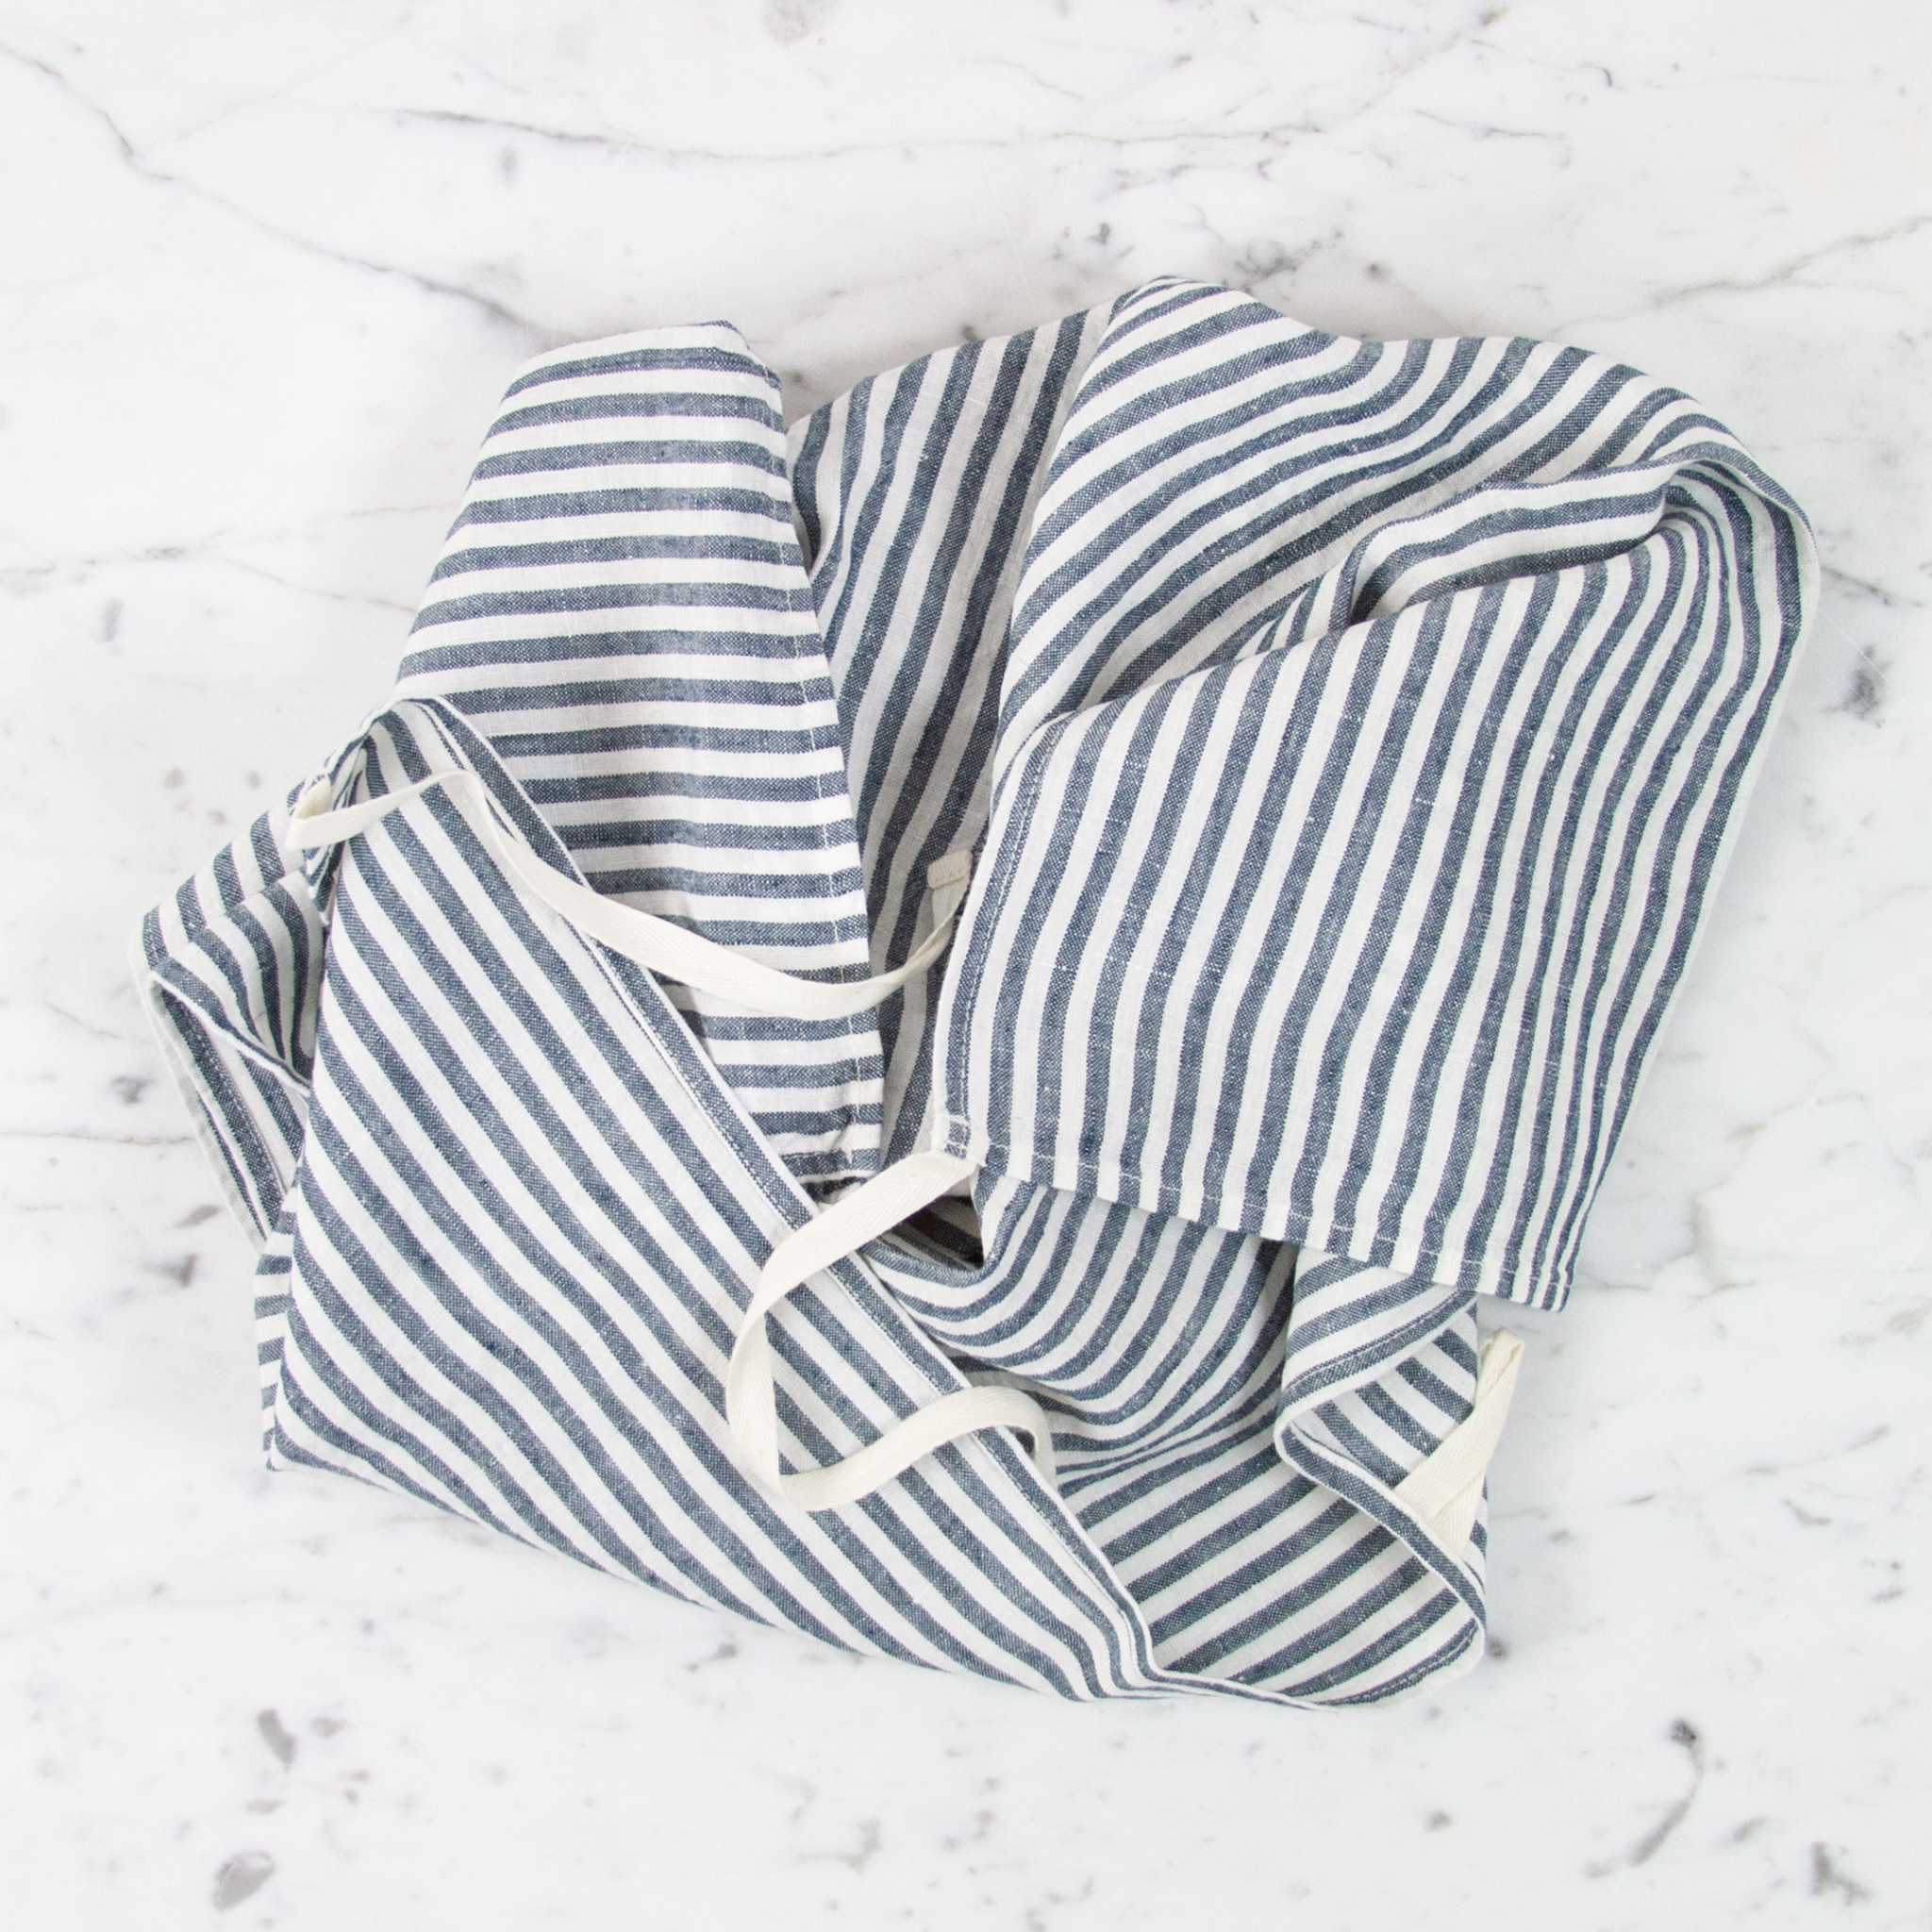 Washed French Linen Dish or Hand Towel with Hidden Apron Strings - Thick Duck Blue + White Stripe